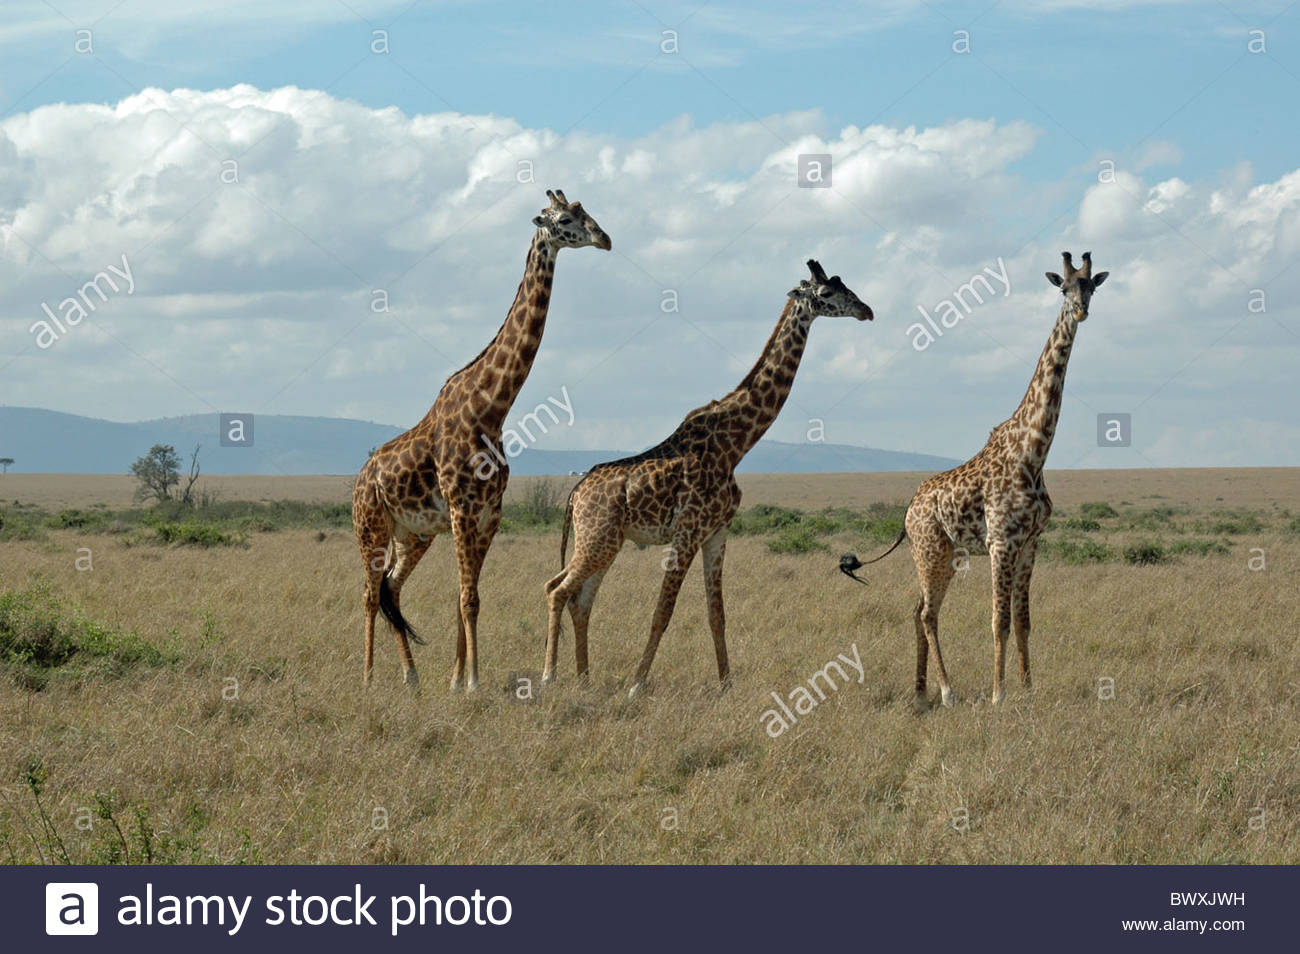 Super models of the serengetti, Maasi Giraffes (Giraffa Camelopardalis) - Stock Image